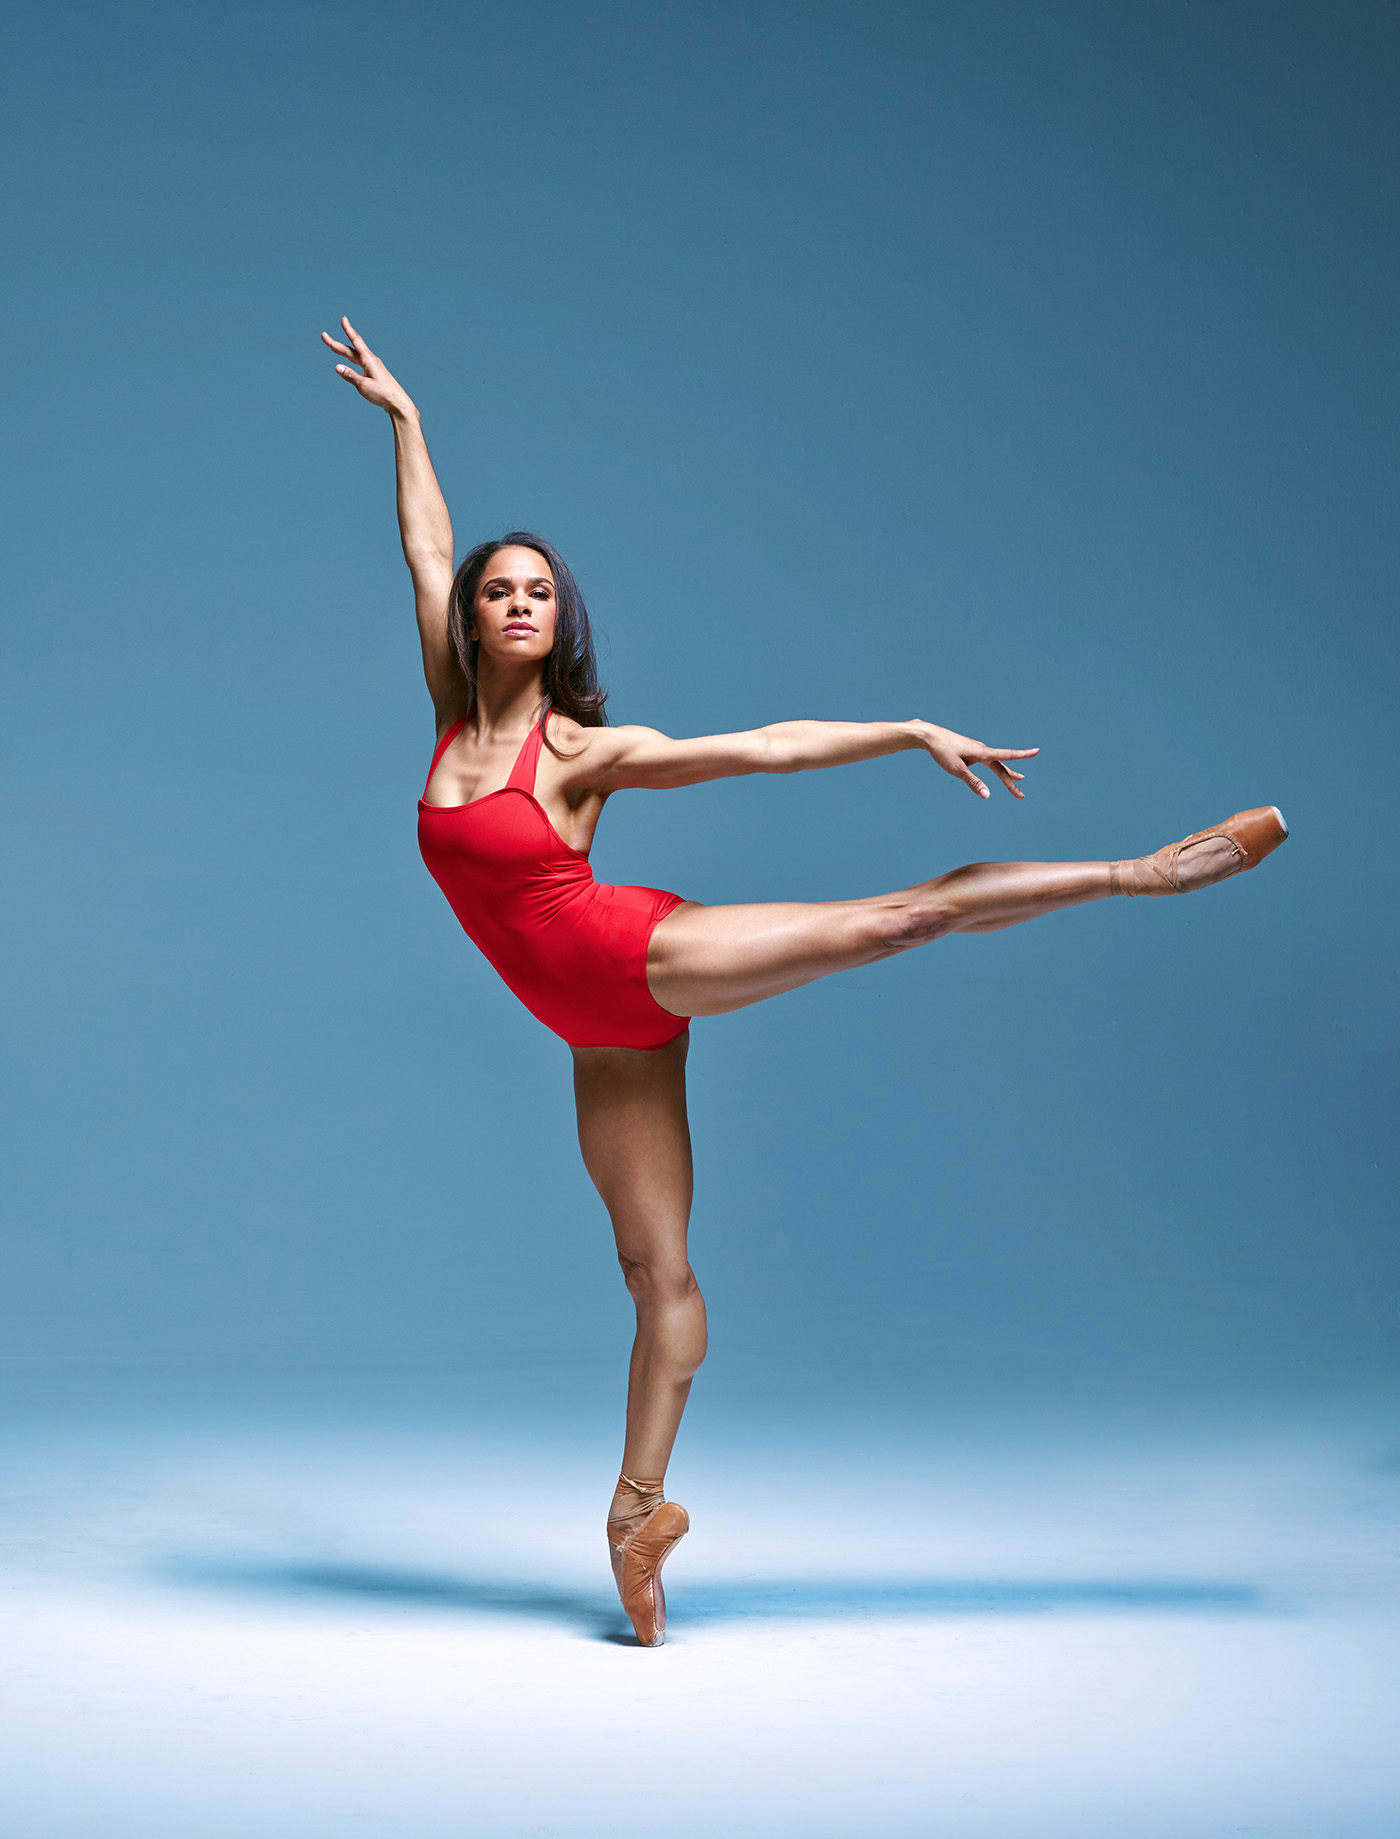 Misty Copeland nudes (58 photo) Topless, YouTube, cleavage